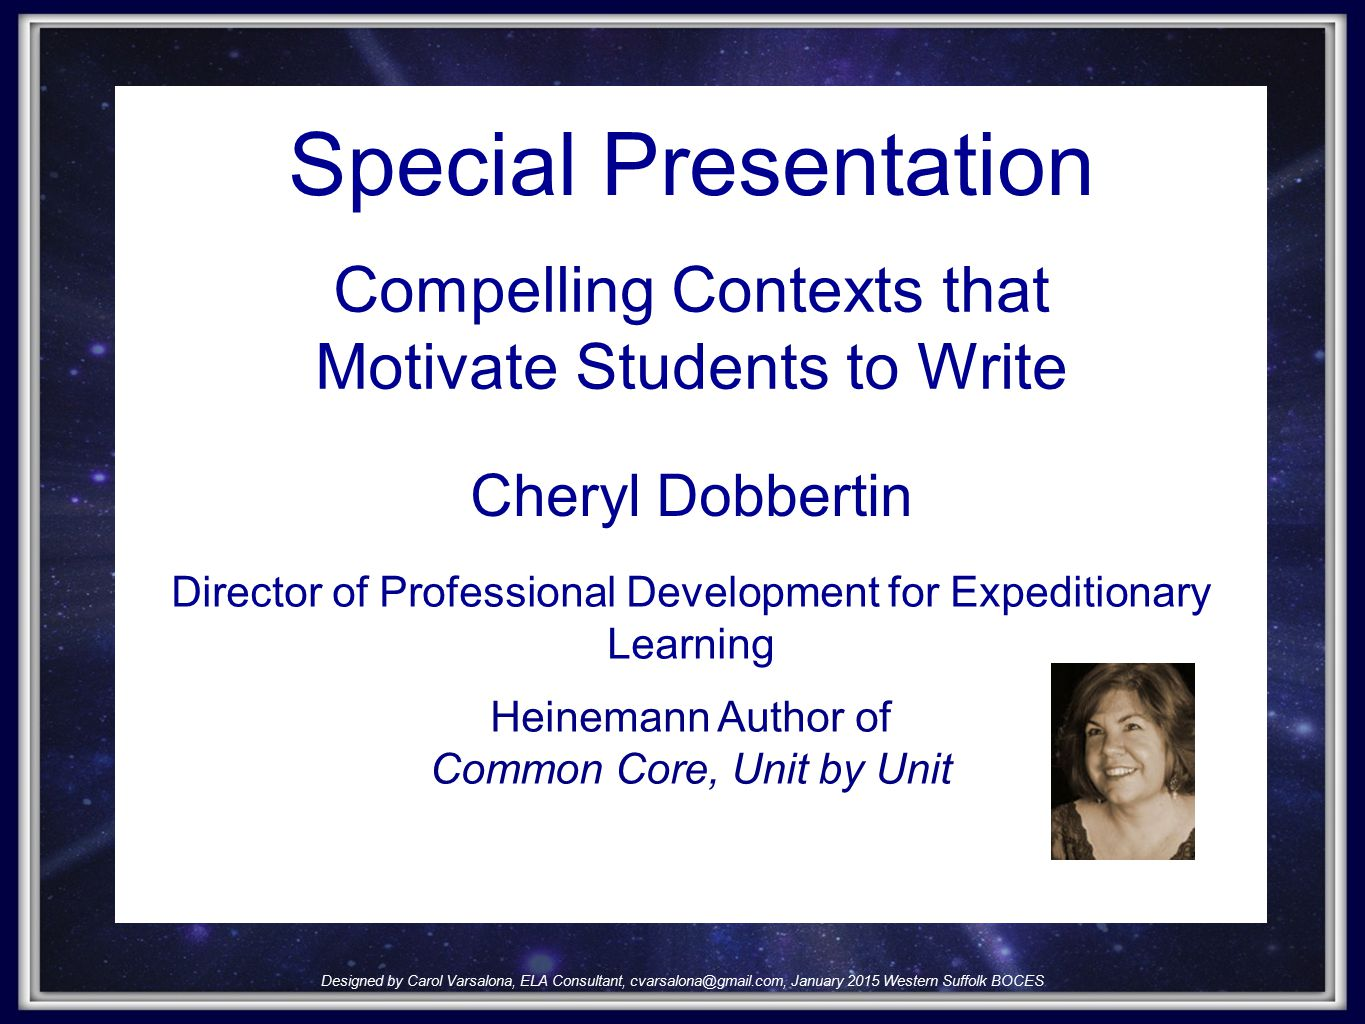 Designed by Carol Varsalona, ELA Consultant, cvarslaona@gmail.com, July 2, 2014cvarslaona@gmail.com Special Presentation Cheryl Dobbertin Designed by Carol Varsalona, ELA Consultant, cvarsalona@gmail.com, January 2015 Western Suffolk BOCES Compelling Contexts that Motivate Students to Write Director of Professional Development for Expeditionary Learning Heinemann Author of Common Core, Unit by Unit